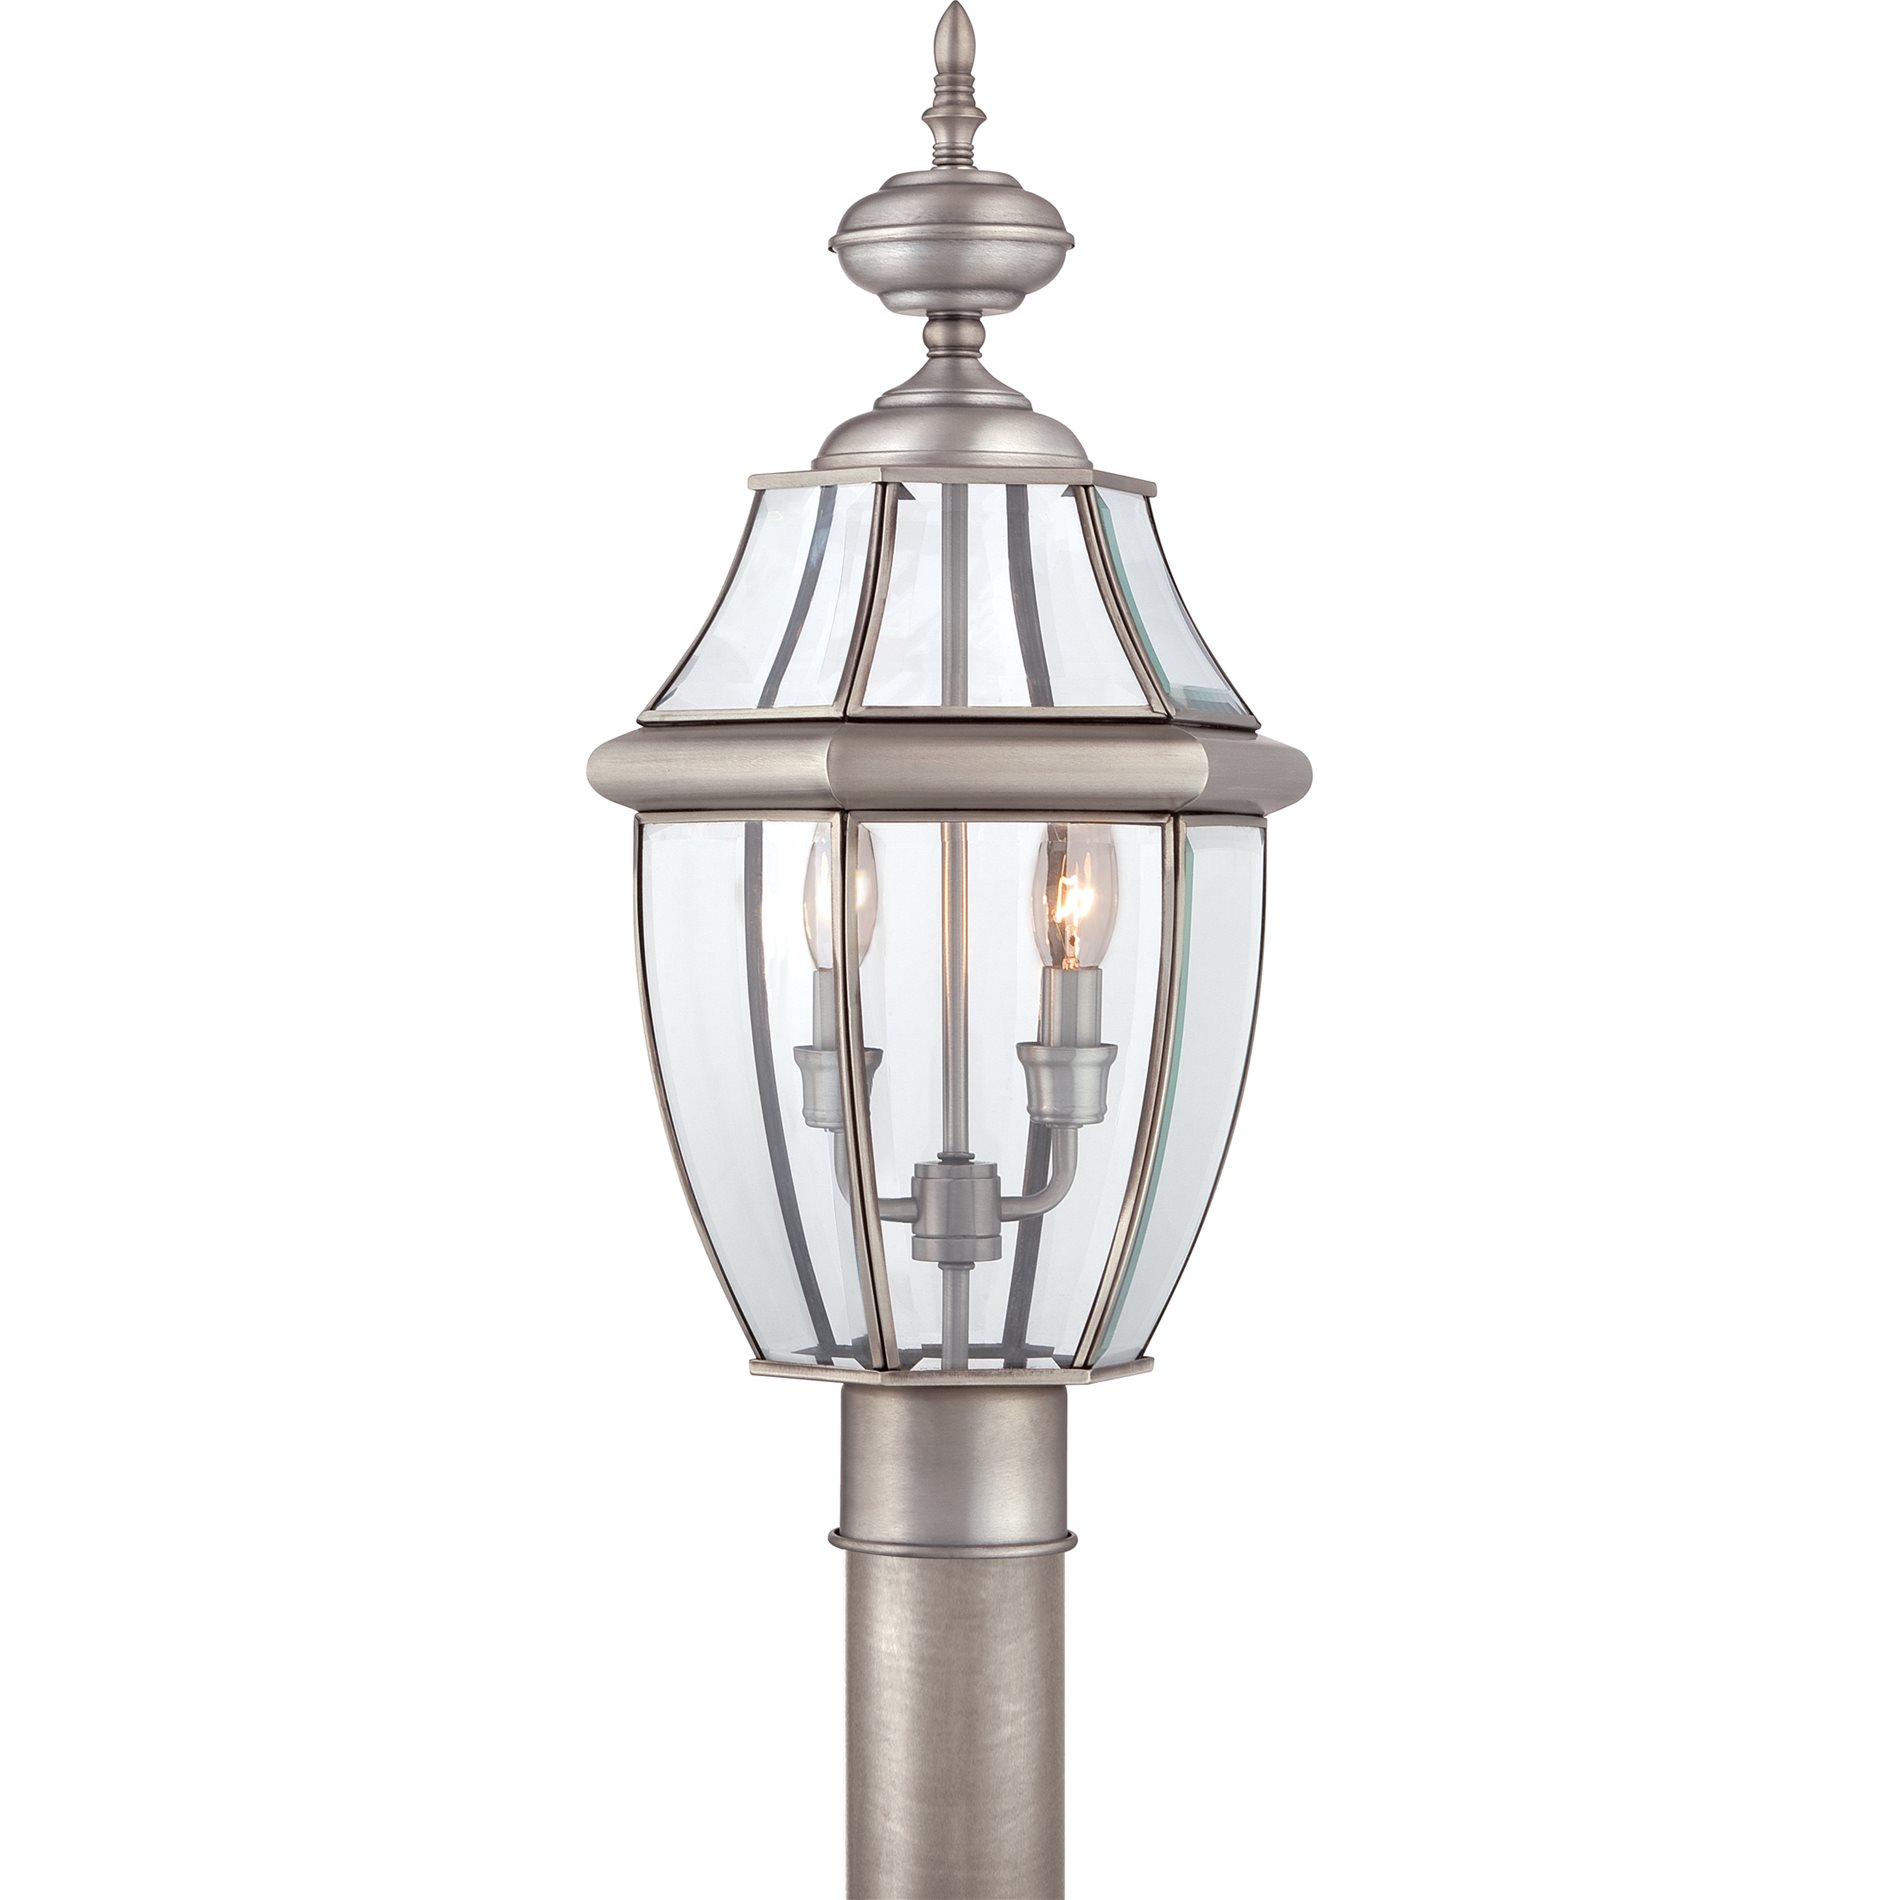 Quoizel NY9042P Newbury Traditional Outdoor Post Lantern Light QZ NY9042P